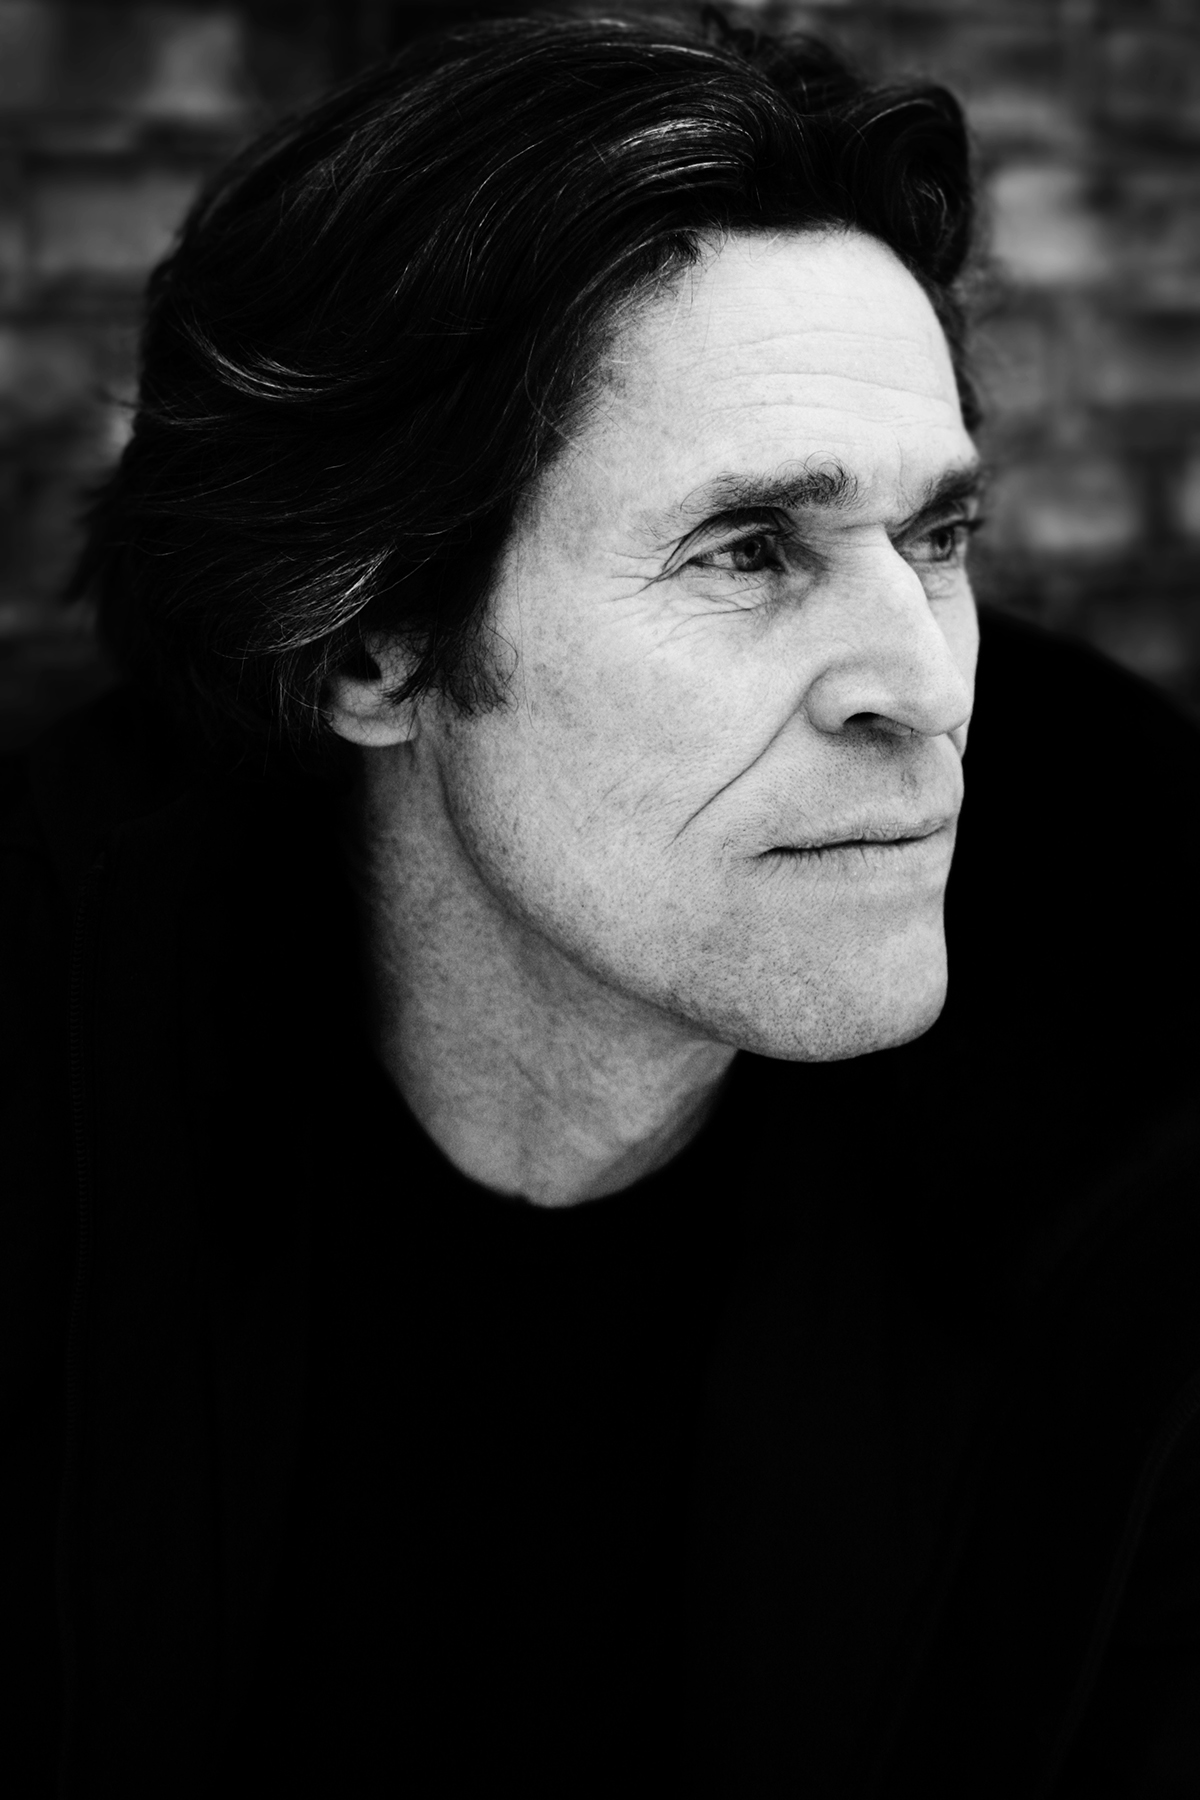 Amerian actor Willem Dafoe